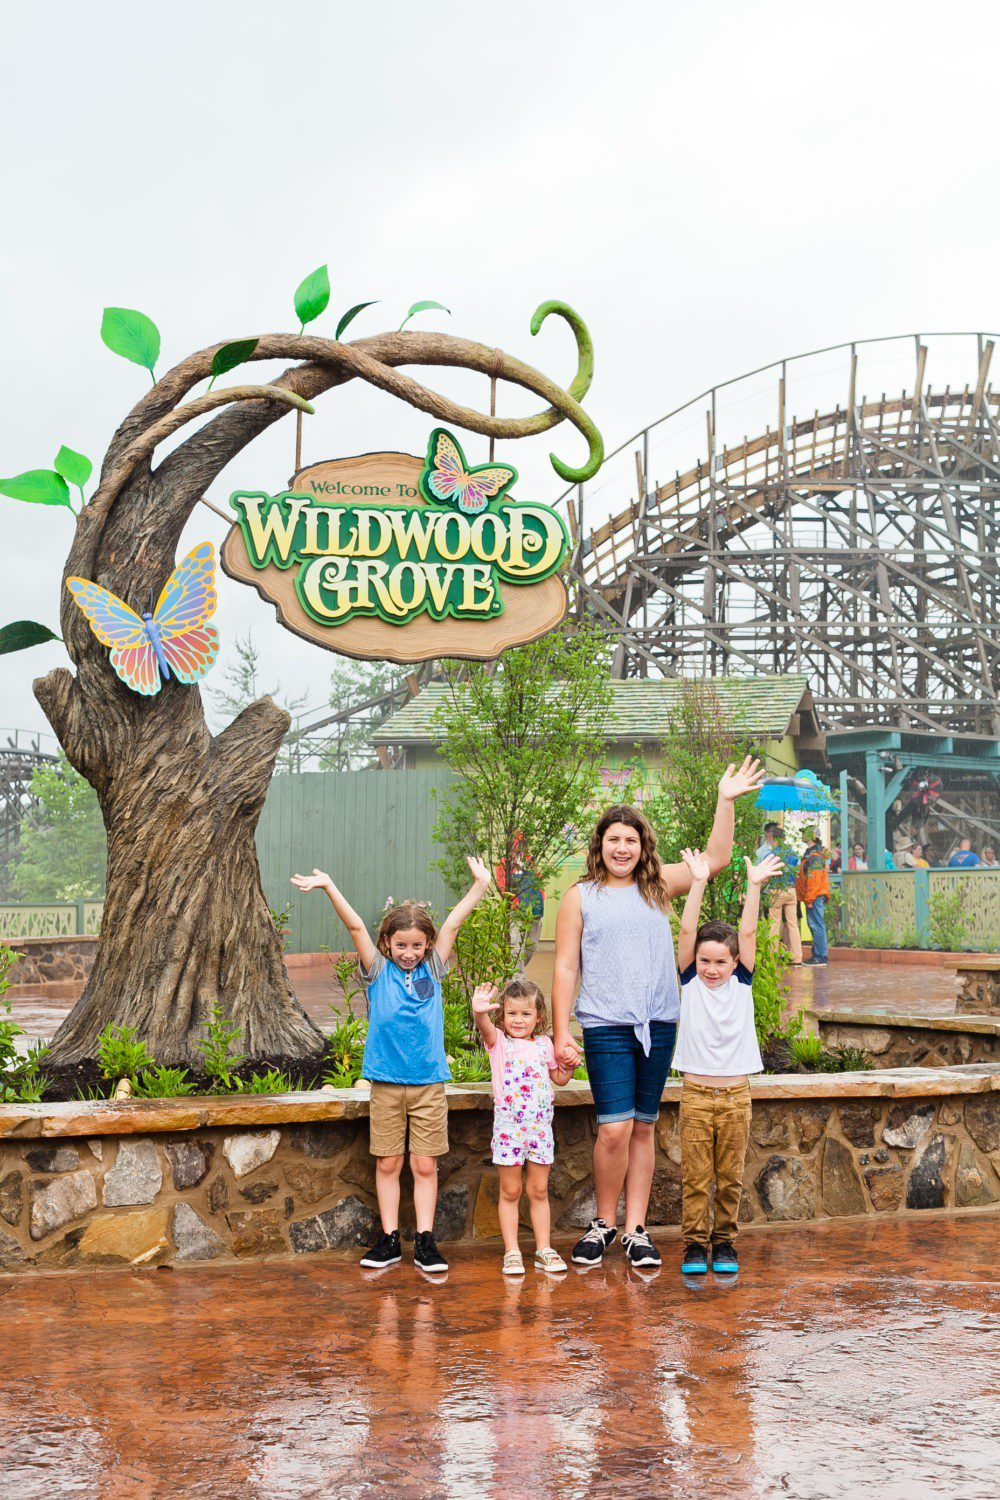 A Day at Dollywood and the new Wildwood Grove | VIDEO with Southern Living and Tabitha Blue of Fresh Mommy Blog | A Day at Dollywood and the new Wildwood Grove | VIDEO with Southern Living by popular Florida travel blog, Fresh Mommy Blog: image of two young girls and two young boys waving and standing under the Wildwood Grove sign at Dollywood park.